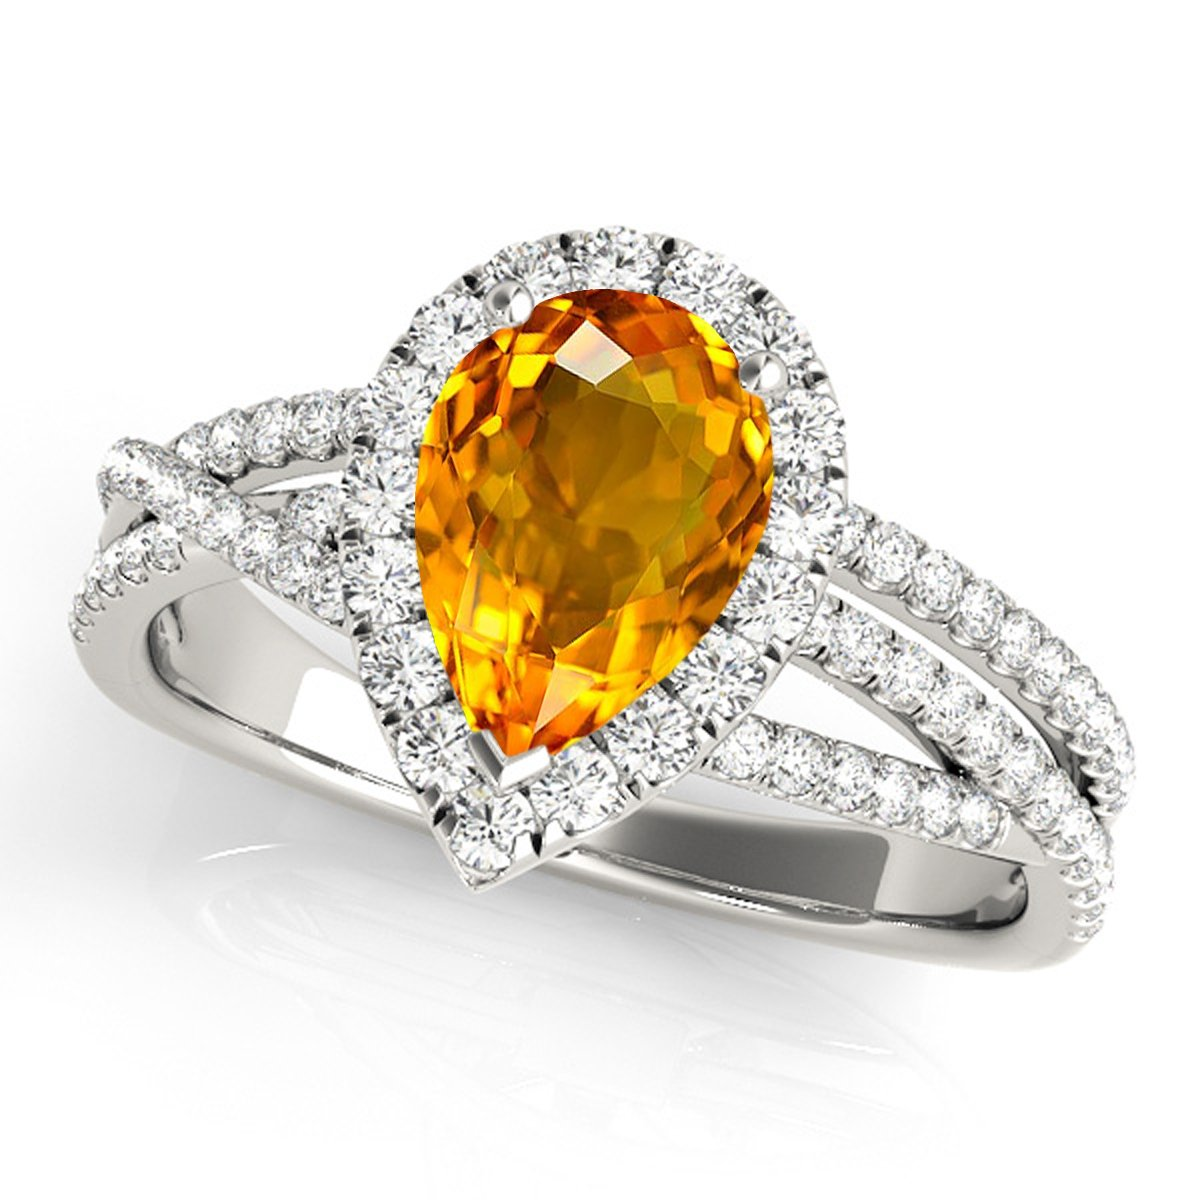 2.15 Ct. Ttw Diamond and Pear Shaped Citrine Ring in 10K White Gold